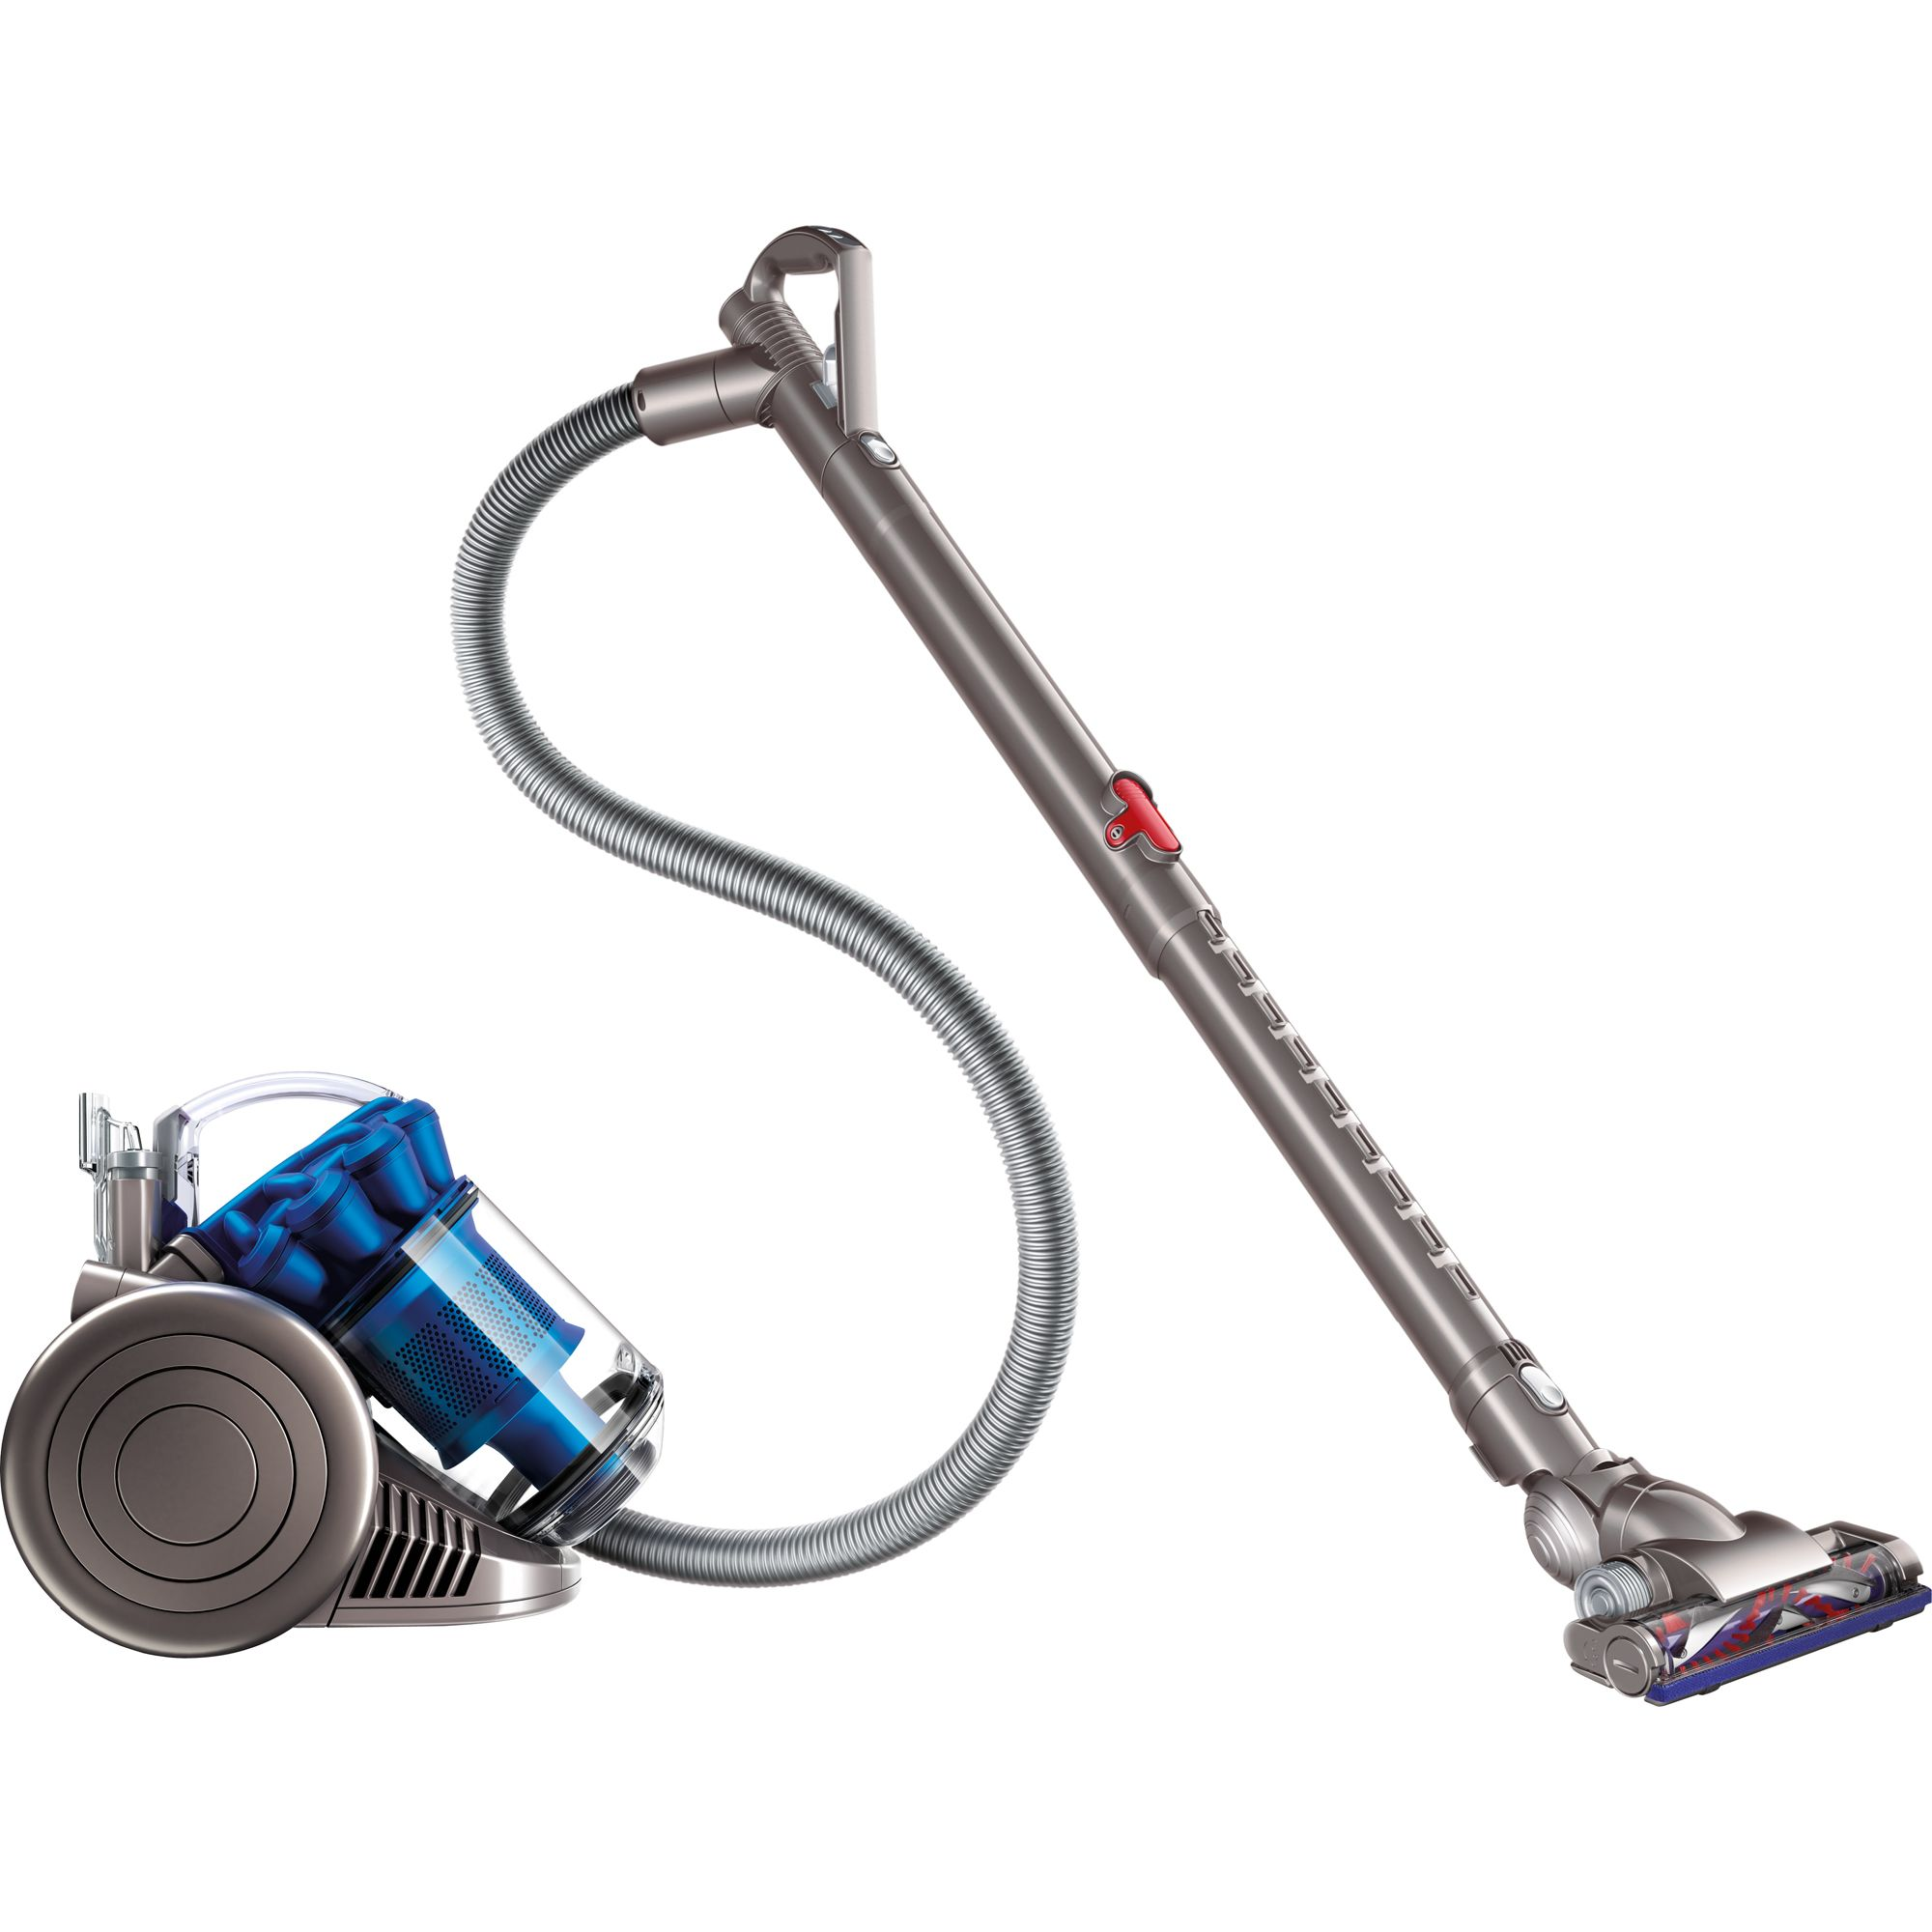 Dyson DC26 City Multi-floor Bagless Canister Vacuum Cleaner -Closeout